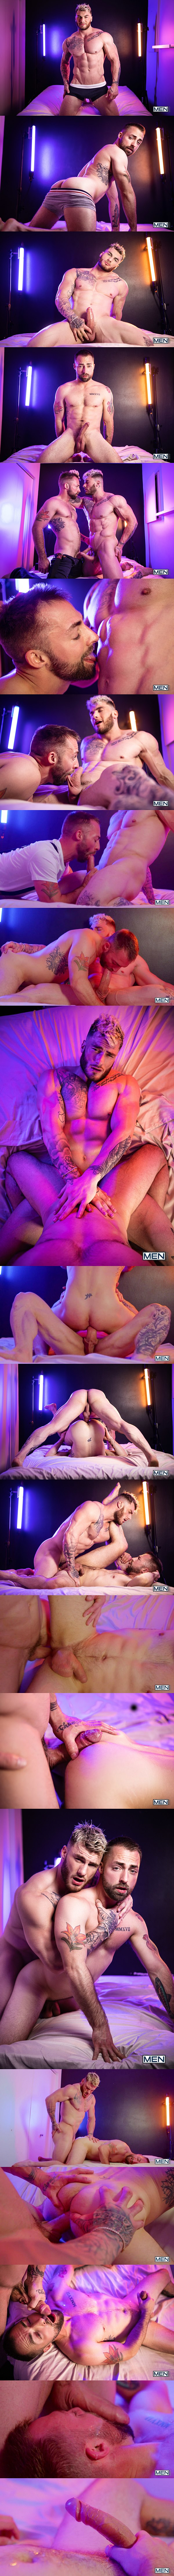 Men - popular porn star William Seed barebacks bearded stud Jeremy London in different positions until he gives Jeremy a facial in Hooking Up With William Seed 02